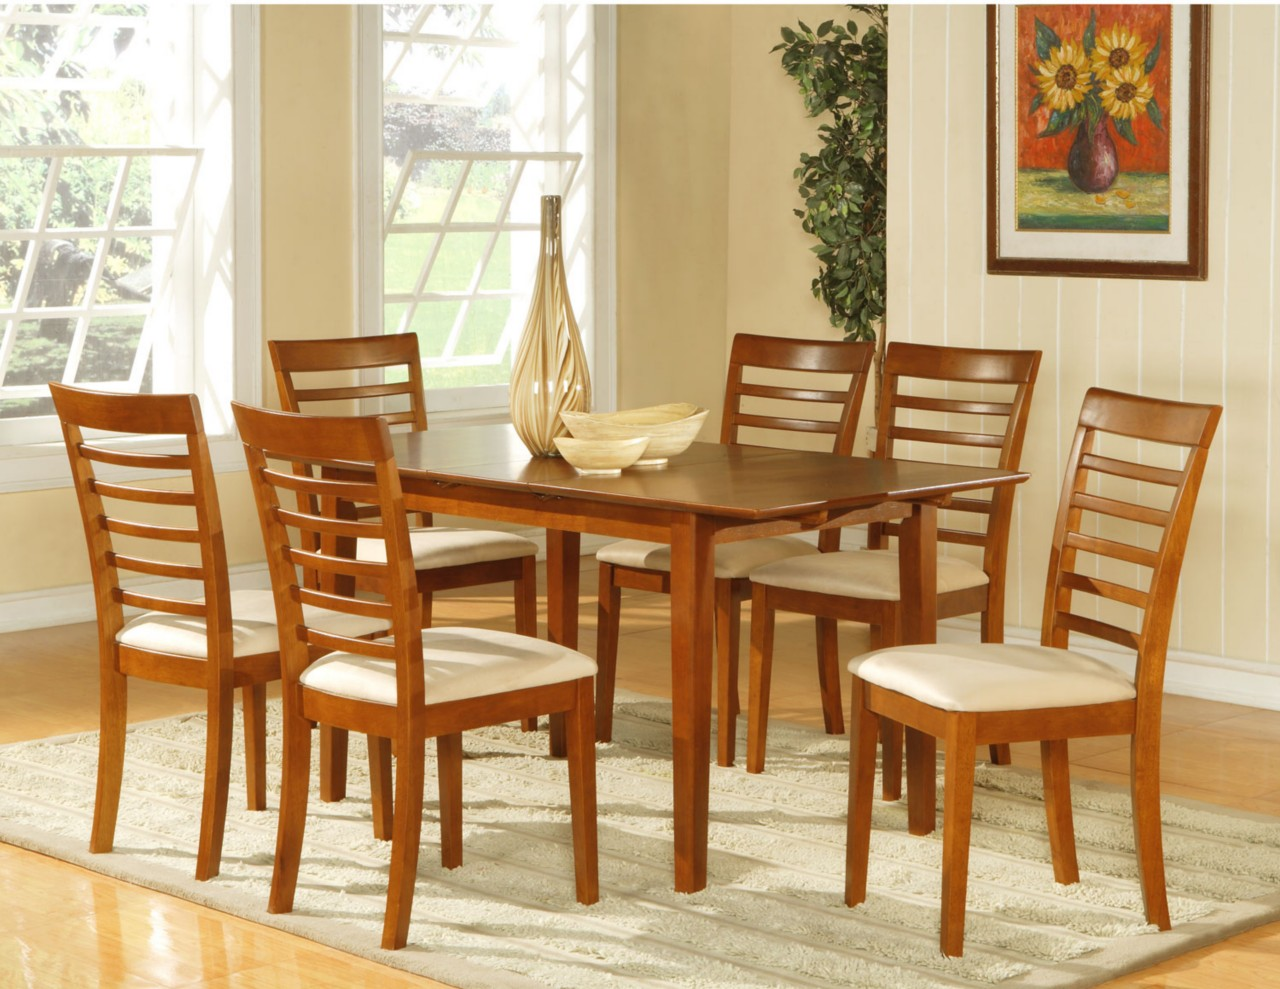 7pc dining room dinette set table and 6 chairs brown ebay for Kitchen dinette sets